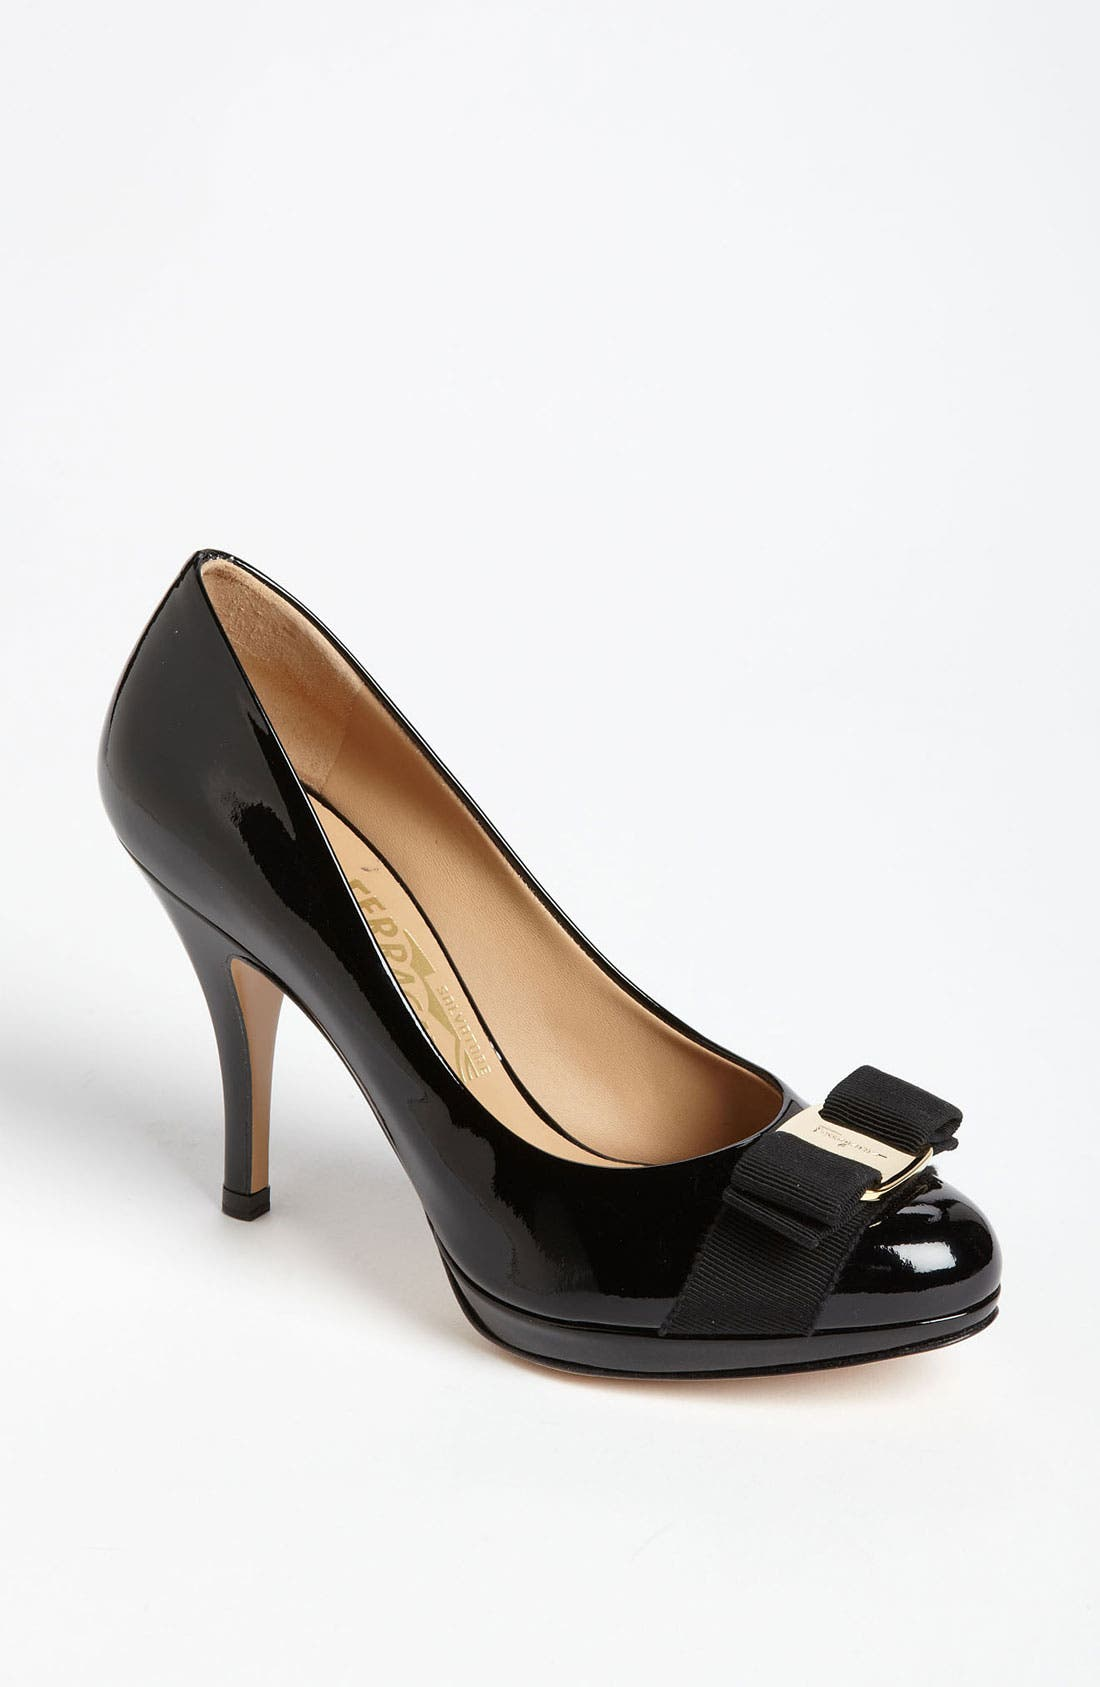 Alternate Image 1 Selected - Salvatore Ferragamo 'Tina' Pump